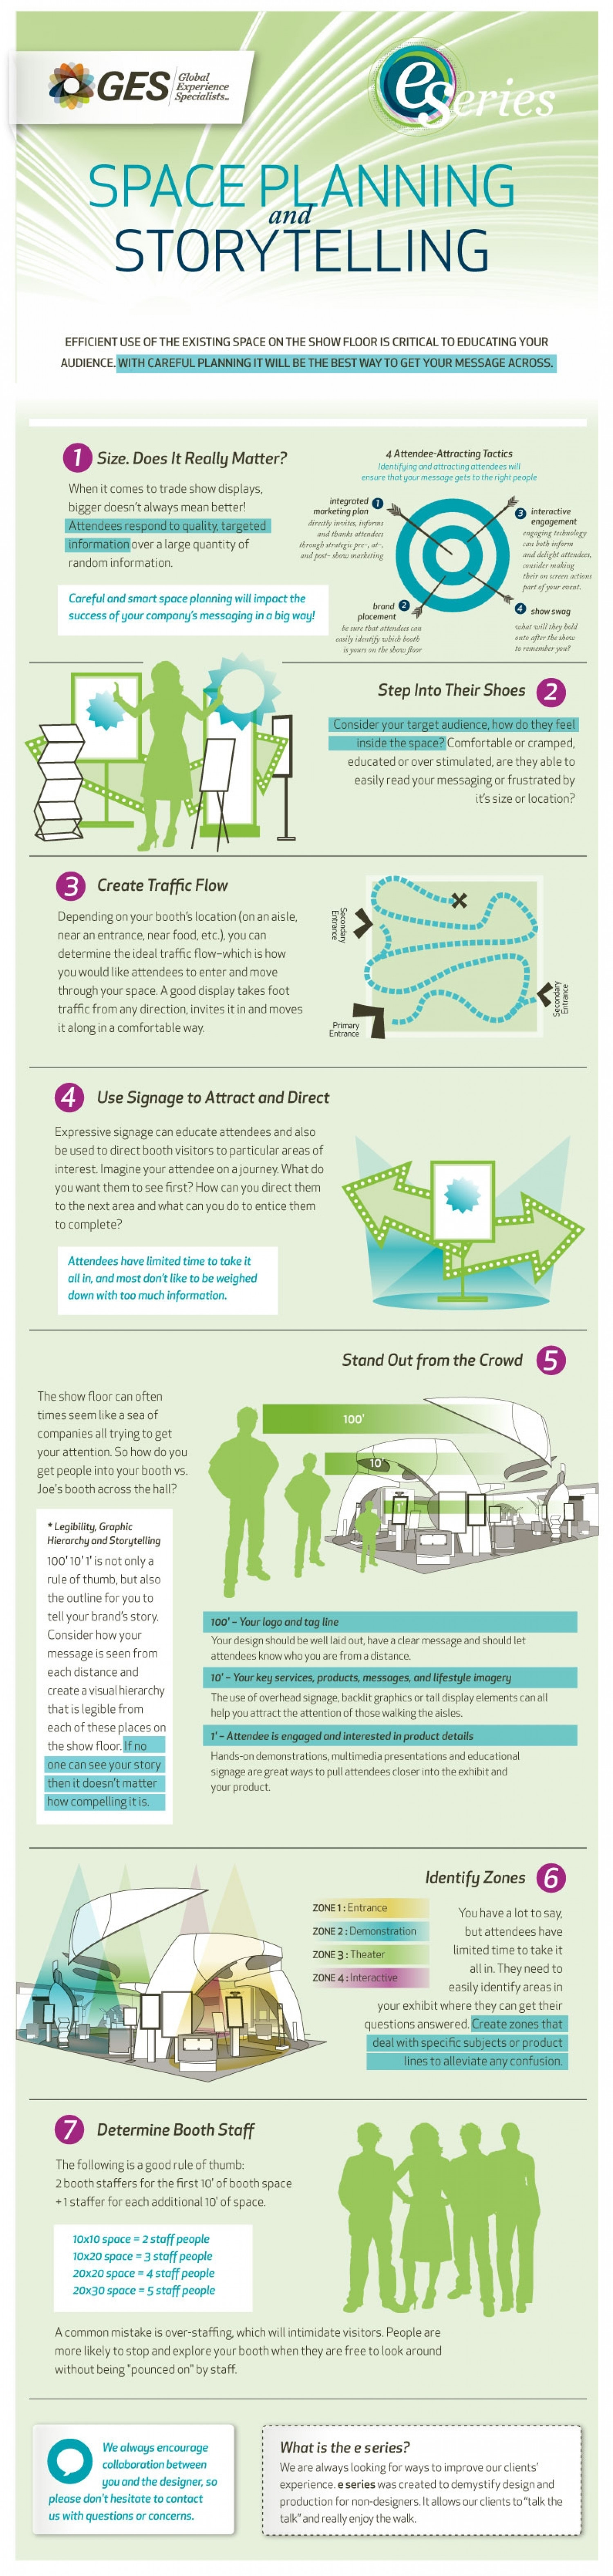 Space Planning and Storytelling Infographic